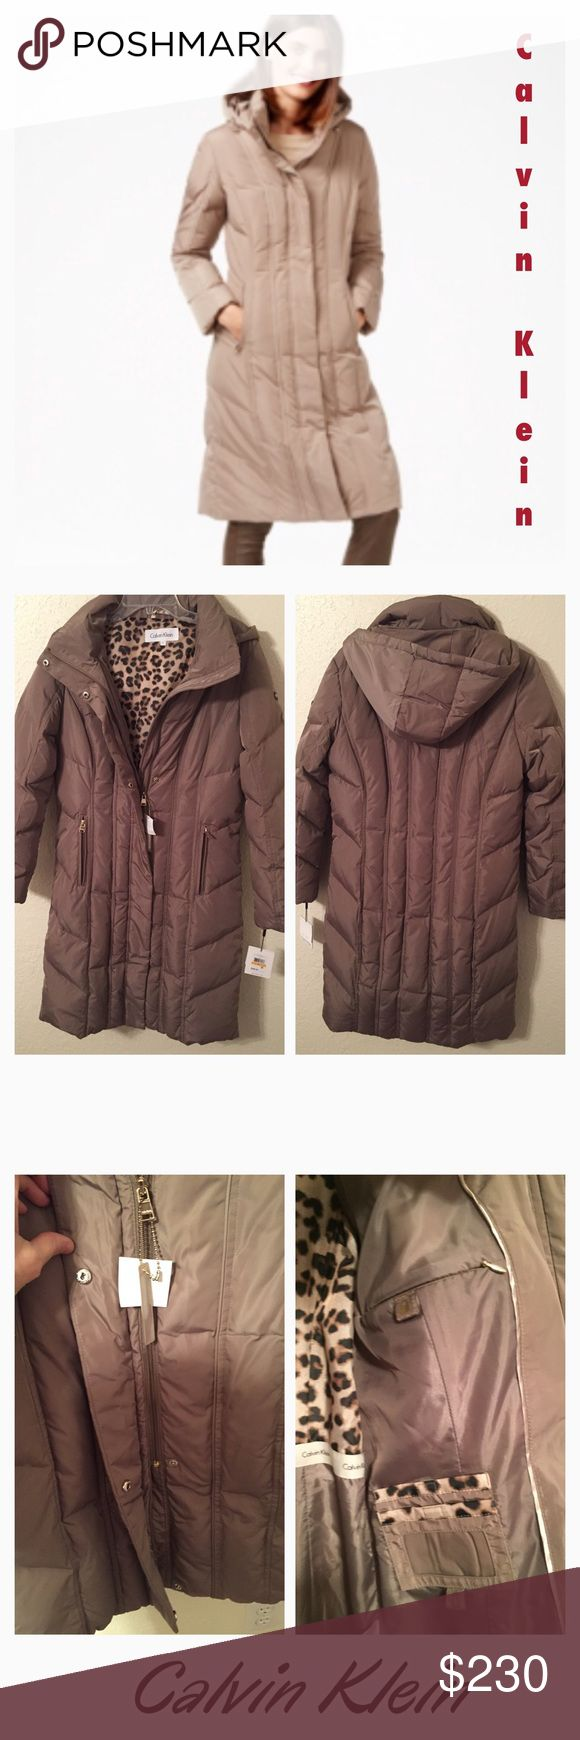 ✨Just Listed✨NWT Calvin Klein Hooded Jacket Just Listed: NWT Calvin Klein Hooded Jacket  Size: Ladies Small  Color: Mocha   Condition: NWT    ❌Trades❌  ⚡️I ship lightening fast⚡️  🎉Discounts with bundles🎉 Calvin Klein Jackets & Coats Puffers